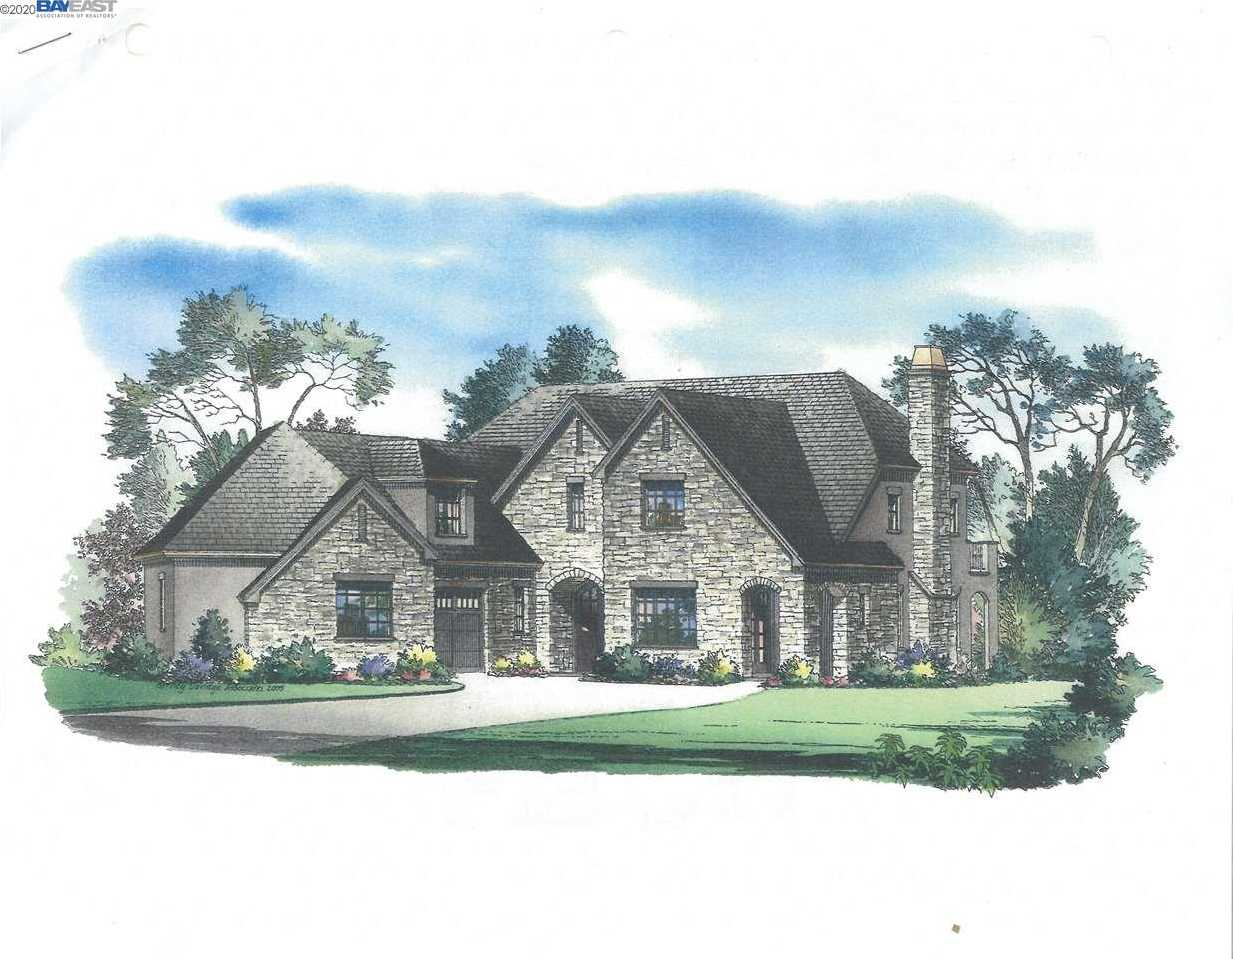 $3,595,000 - 5Br/5Ba -  for Sale in Alamo Springs, Alamo